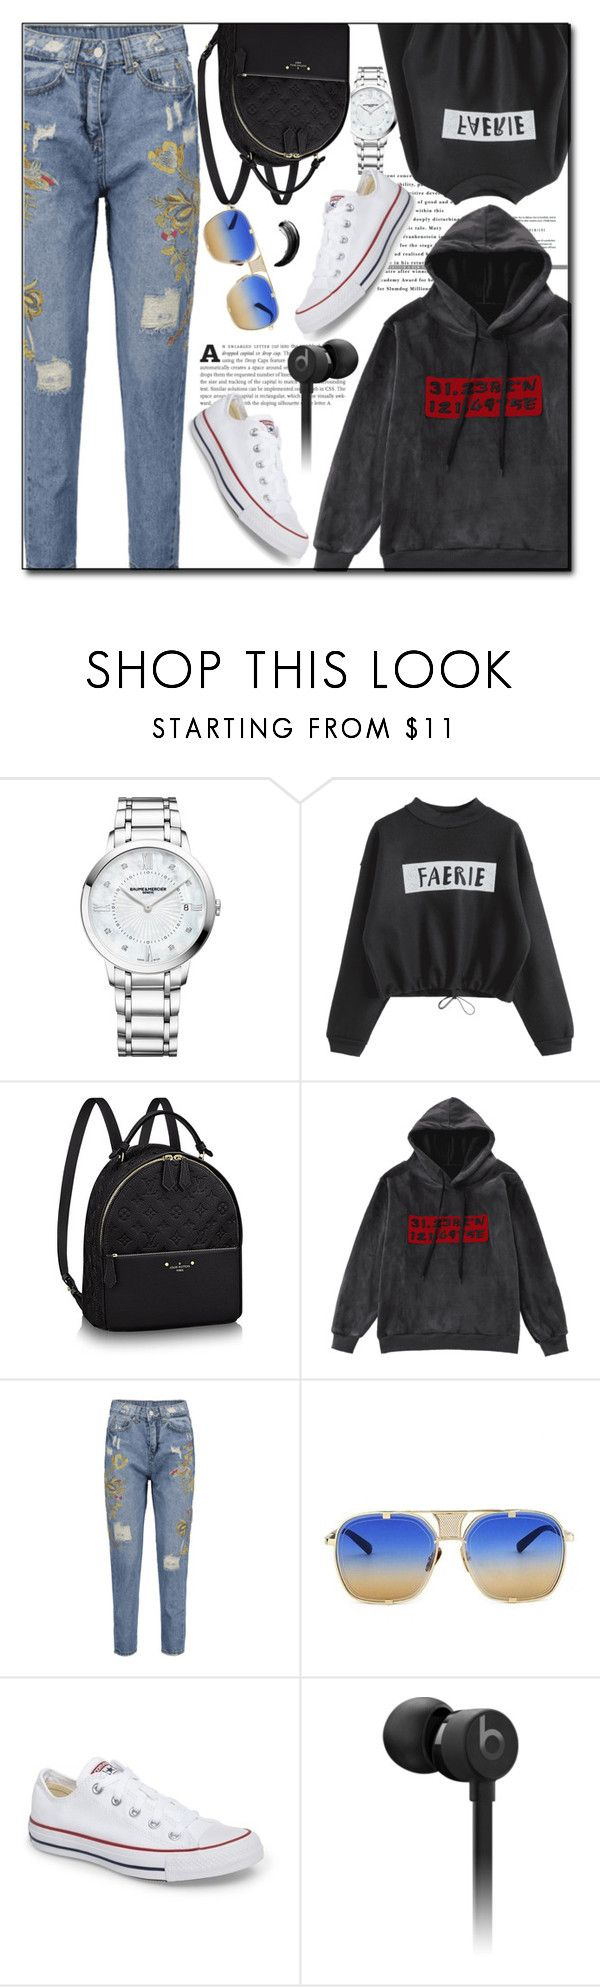 """I'm Thankful"" by sabinn ❤ liked on Polyvore featuring Baume & Mercier, Converse, Beats by Dr. Dre, sporty, velvet, polyvoreset and zaful"